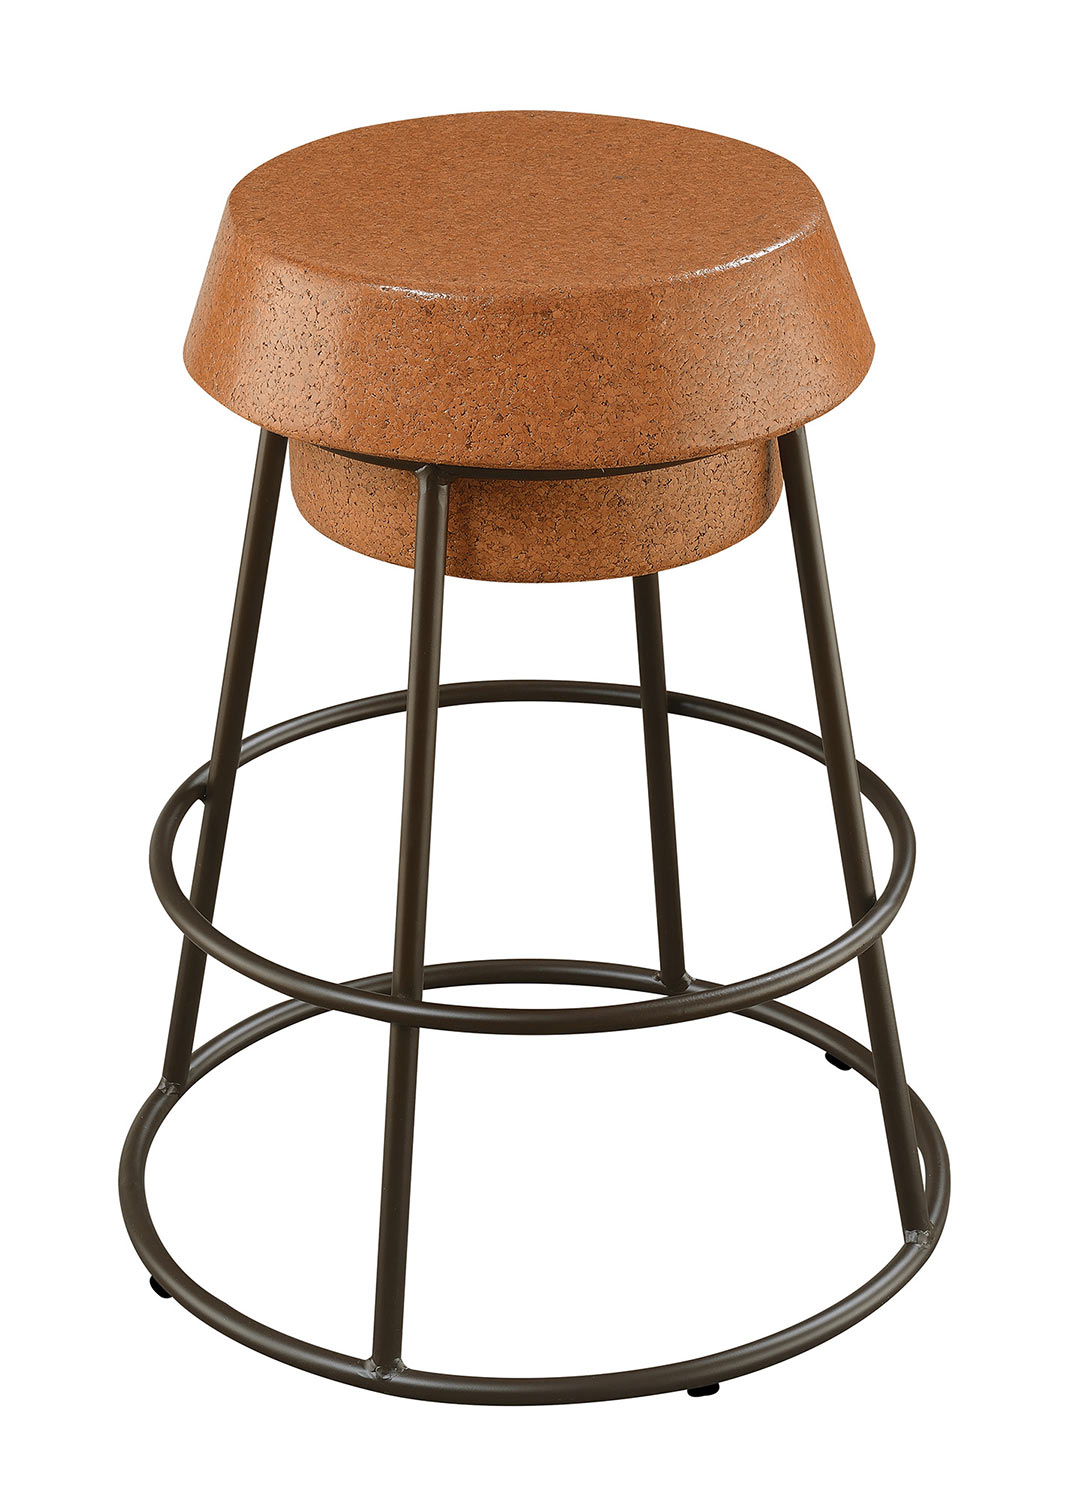 Coaster 100907 Counter Height Stool - Brown Cork